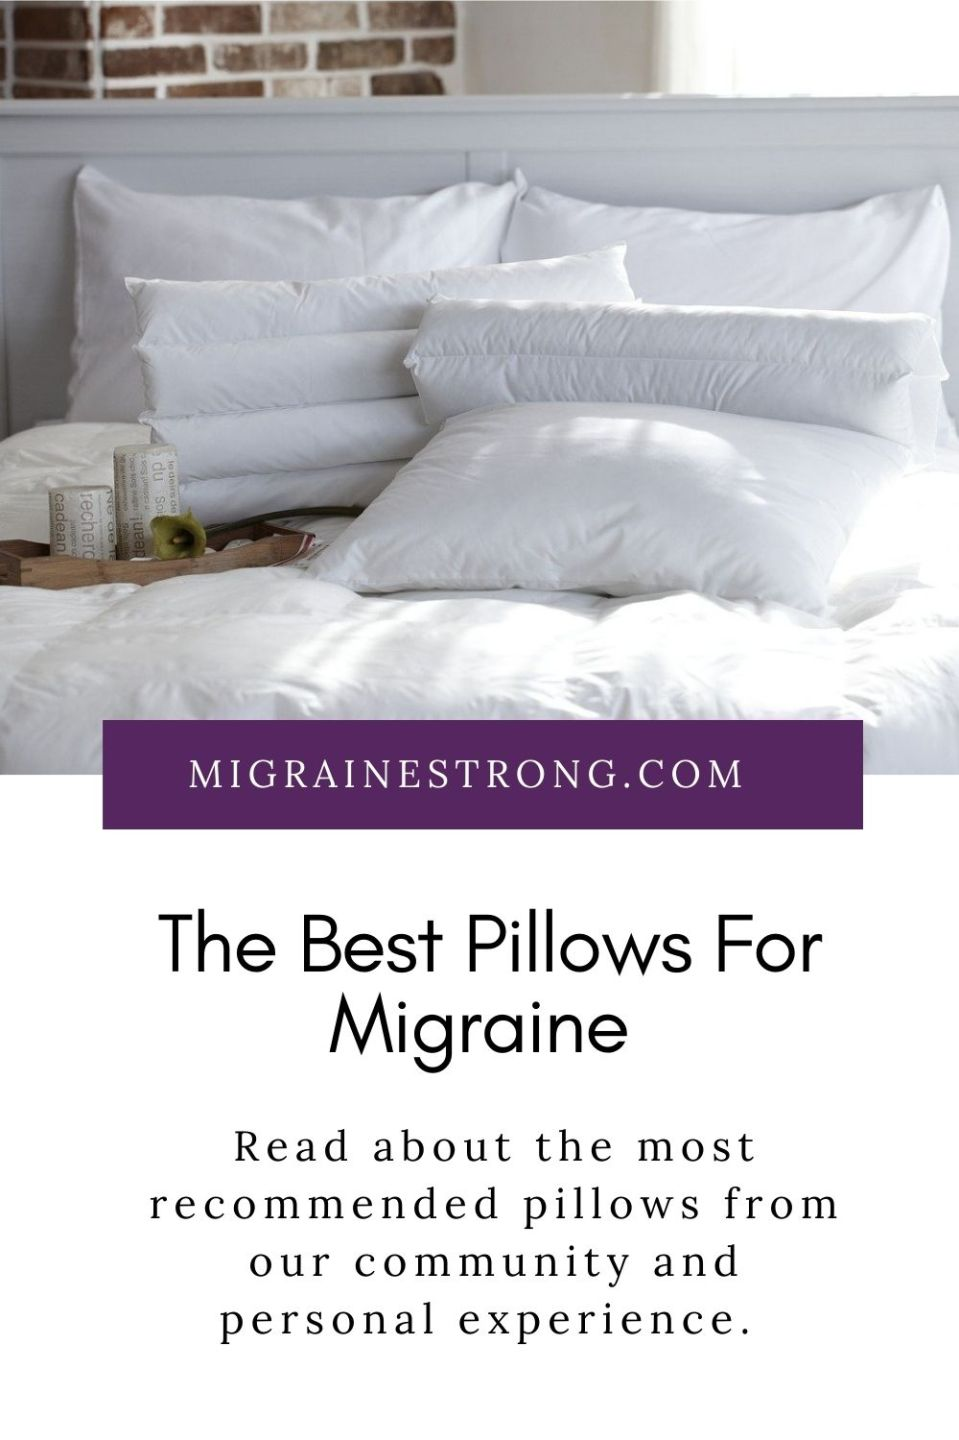 The Best Pillow For Migraine- Essential Info and Reviews